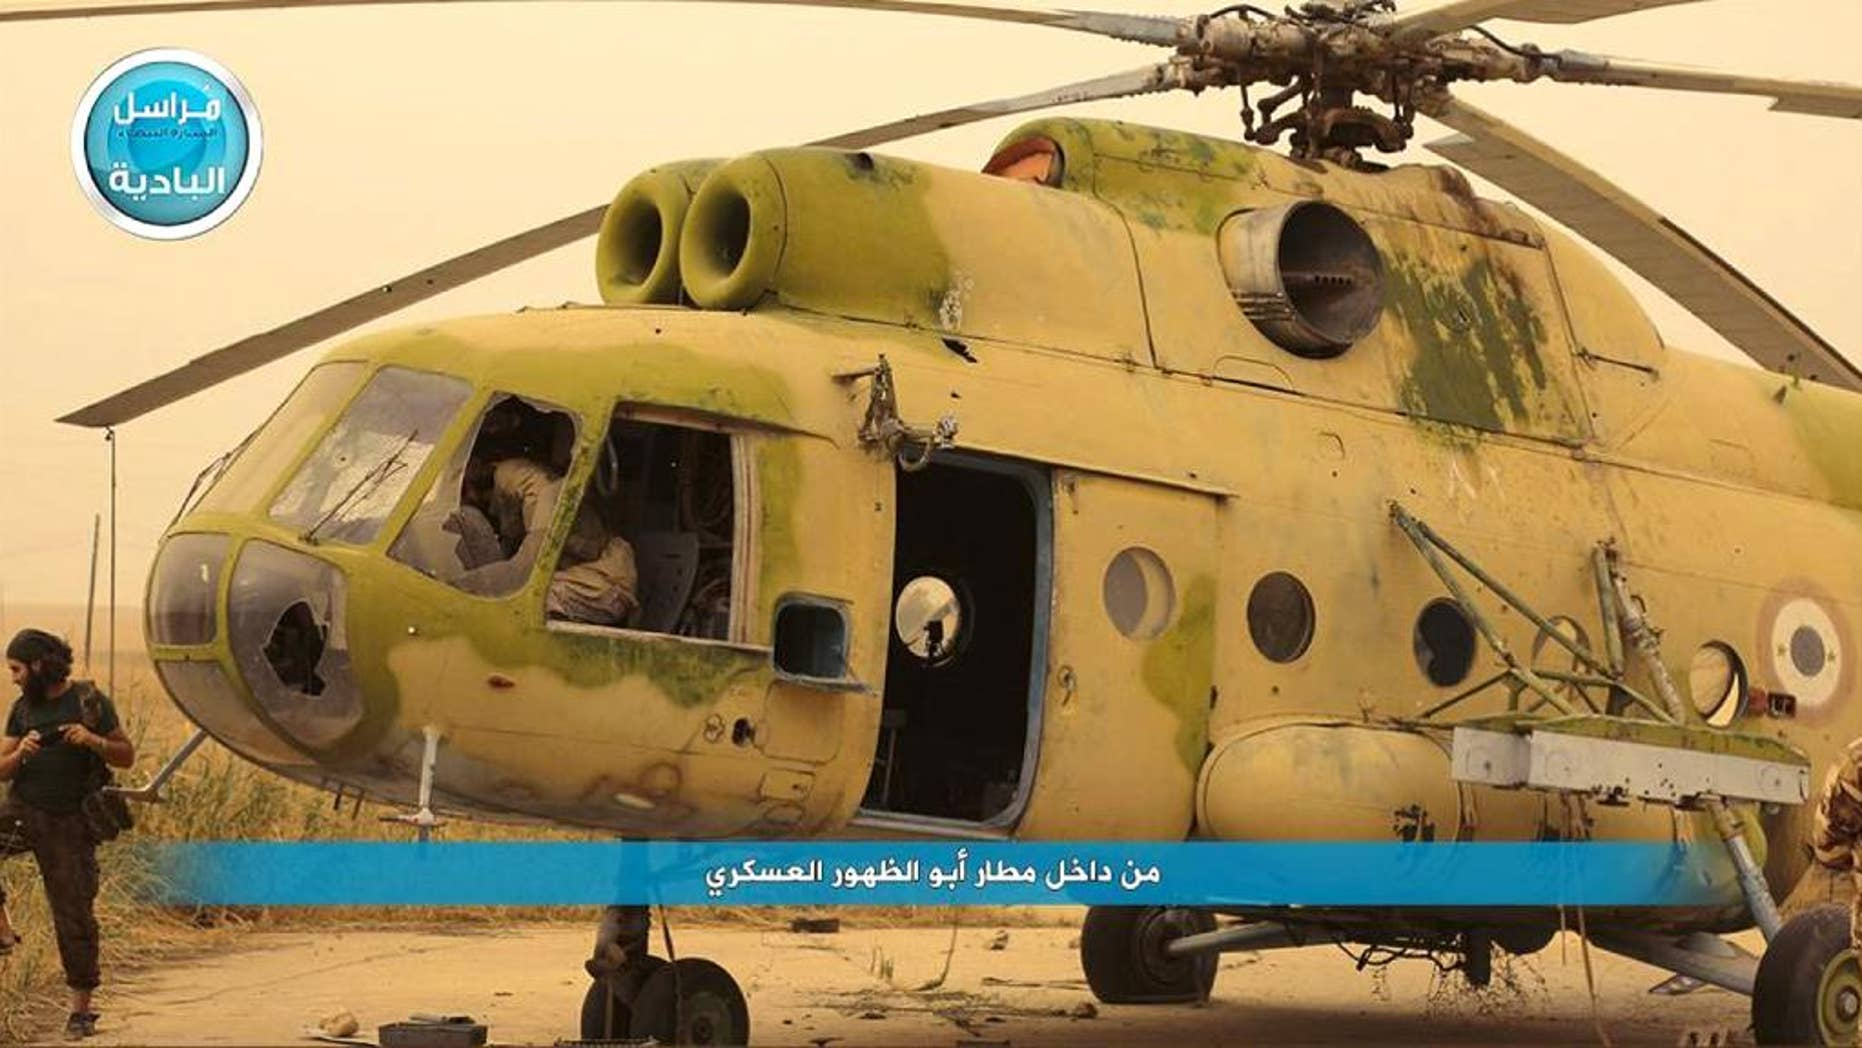 """In this image posted on a social media account of Syria's al-Qaida-linked Nusra Front early Thursday Sept. 10, 2015, which is consistent with AP reporting, shows fighters from the group in and around a Syrian government forces helicopter, inside the Abu Zuhour air base, in Idlib province, north Syria. After a two-year siege, al-Qaida's affiliate in Syria and other insurgents on Wednesday captured the one remaining Syrian army air base in Idlib province, a development that activists said effectively expelled the last of President Bashar Assad's military from the northwestern province. The Arabic words read: """"from inside Abu Zuhour air base."""" (Al-Nusra Front social media account via AP)"""